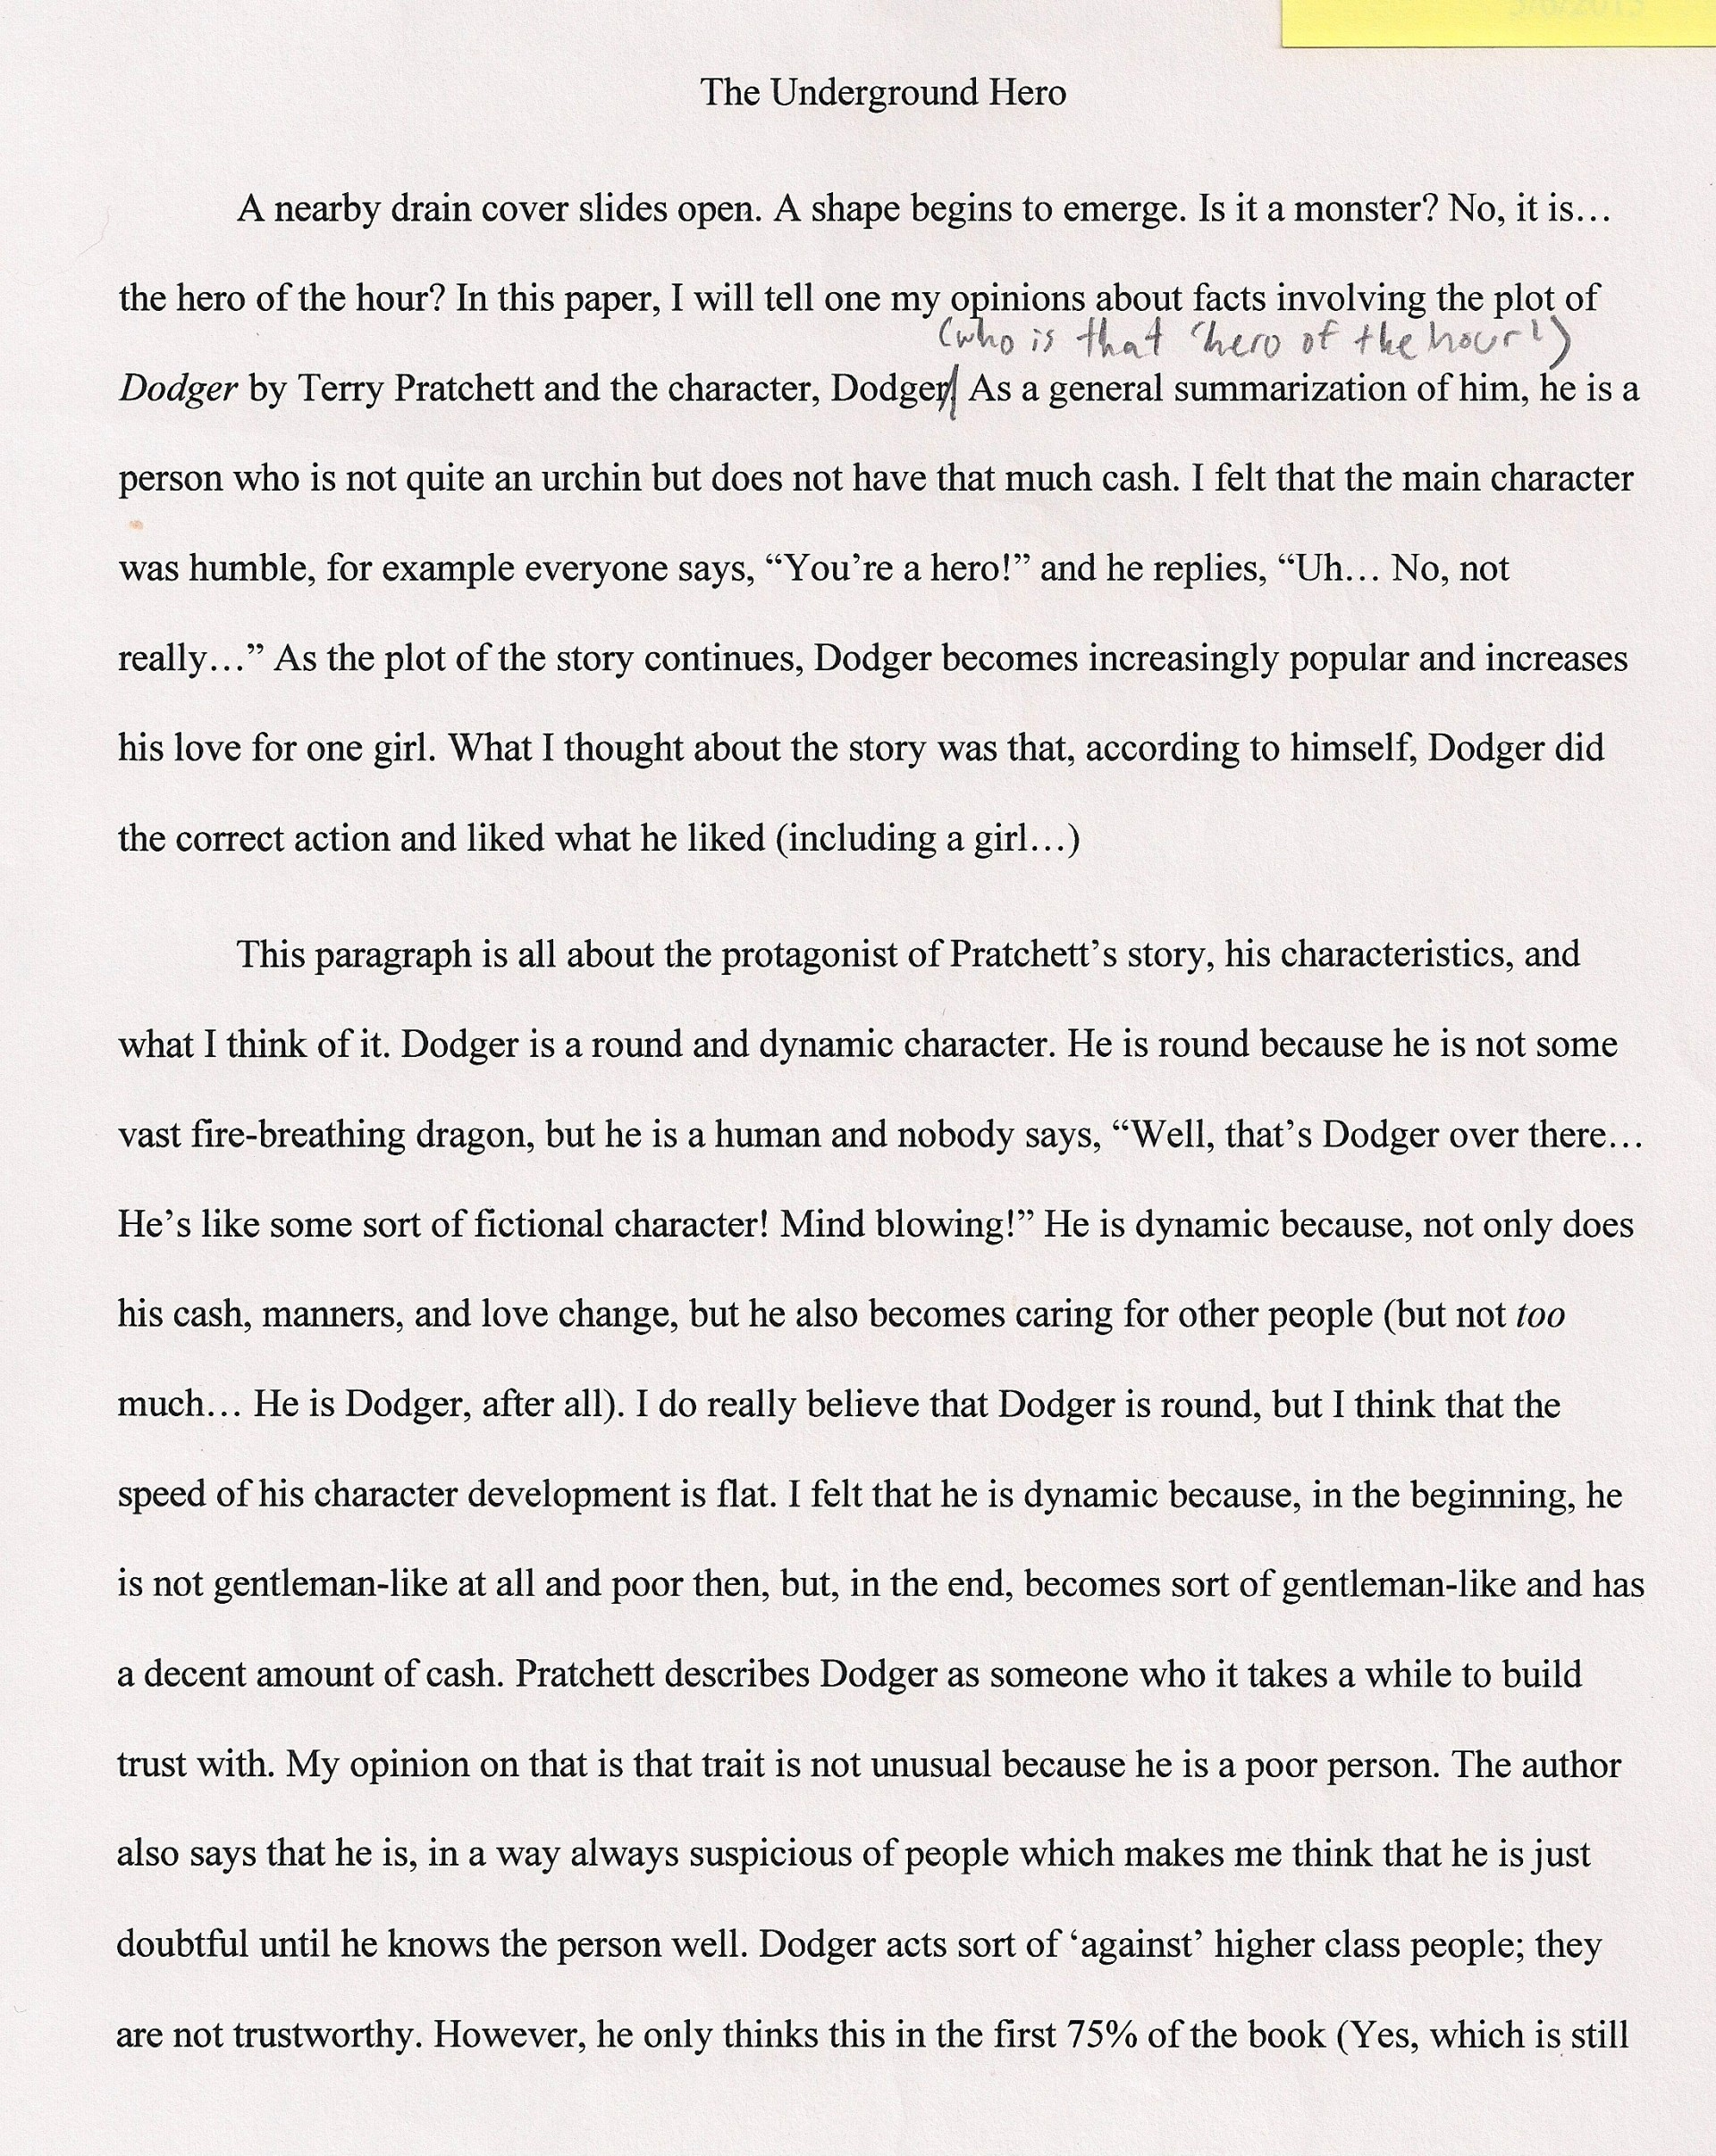 001 my hero essays on heroes good writing what to write